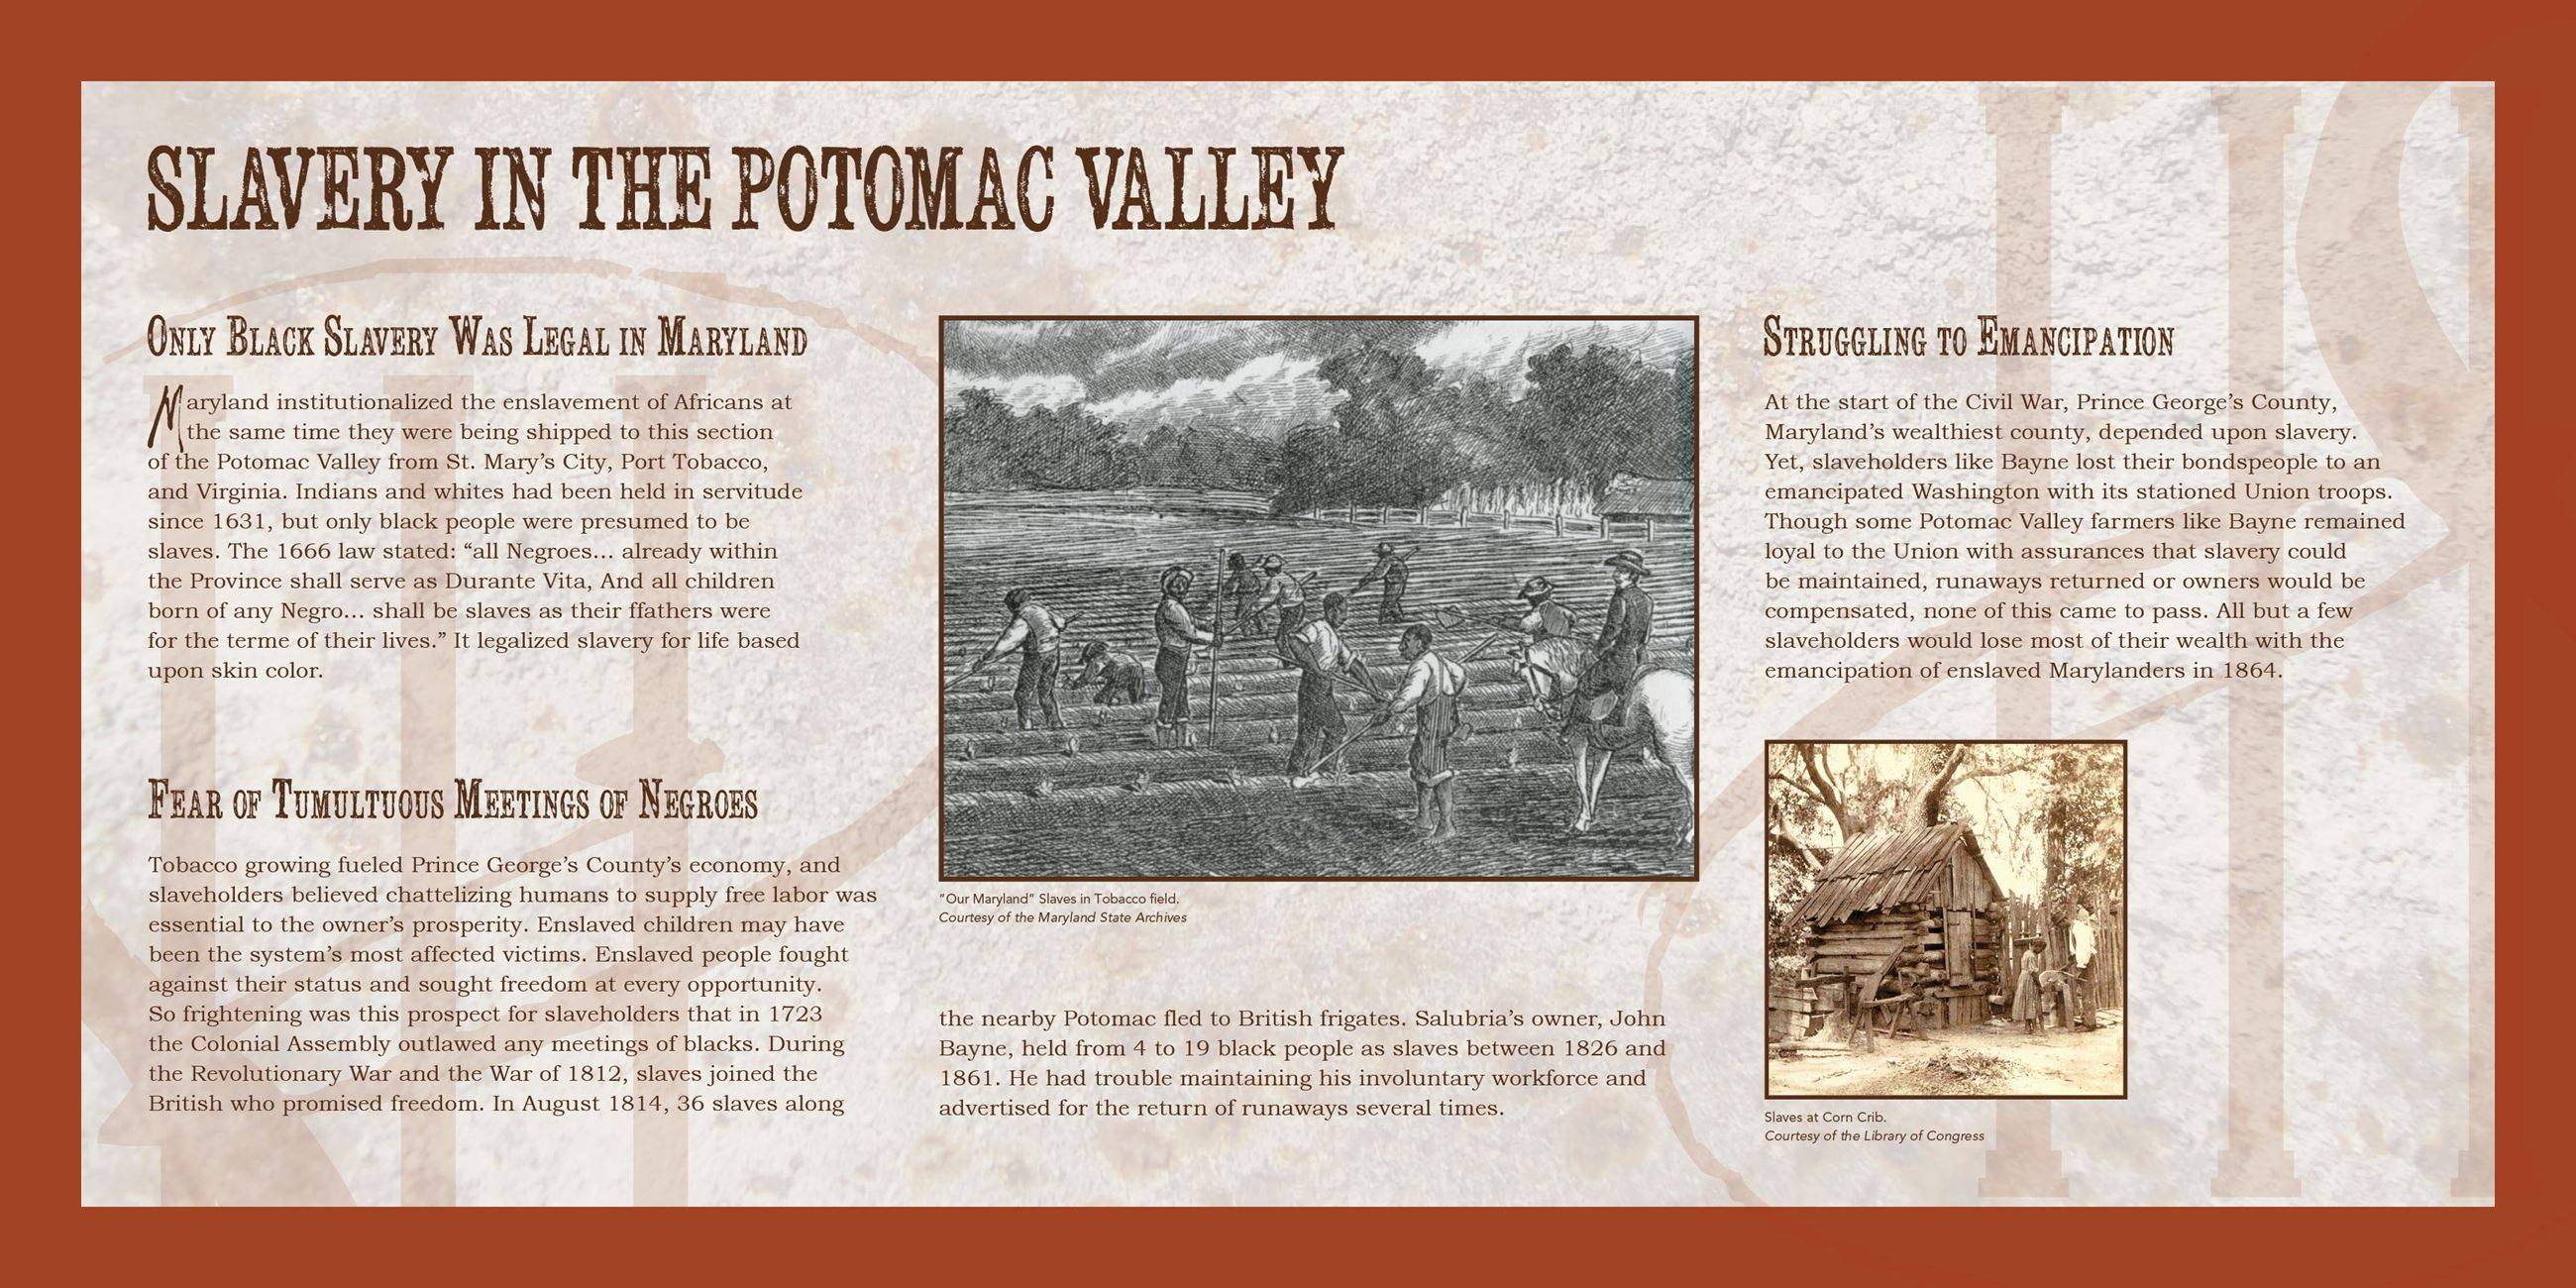 Slavery in the Potomic Valley